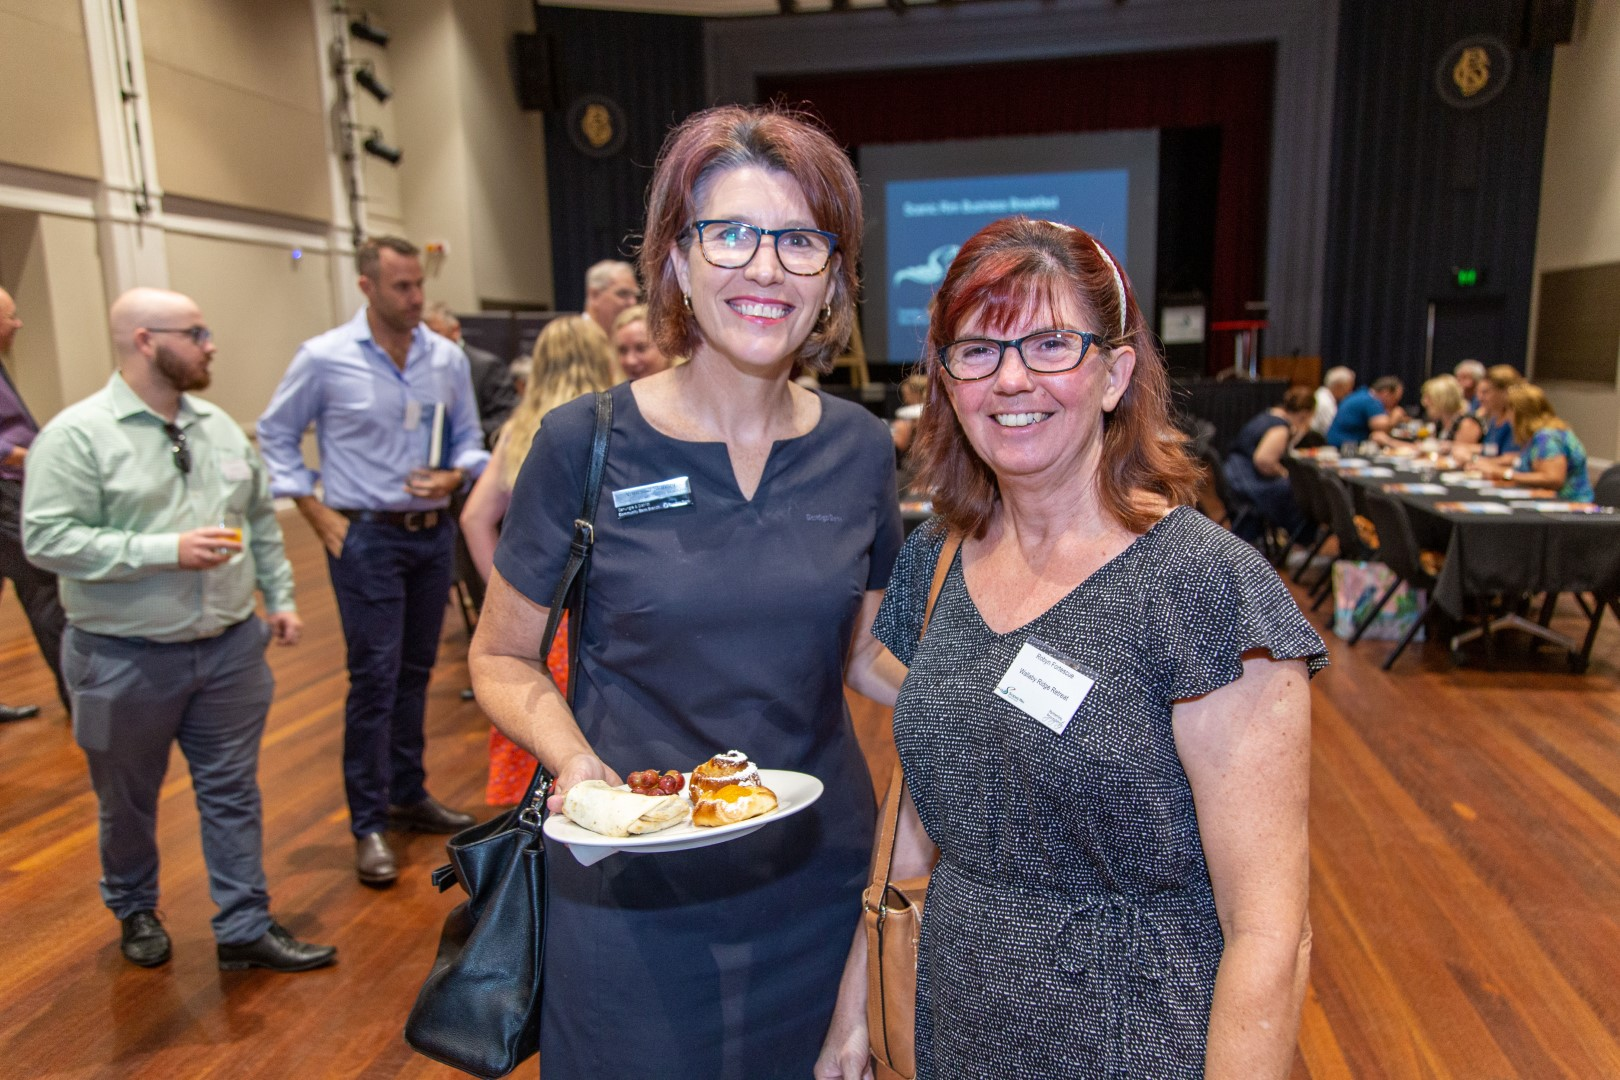 Vanessa Skinner, Bendigo Bank Canungra and Robyn Fortescue, Wallaby Ridge Retreat at the February business breakfast.